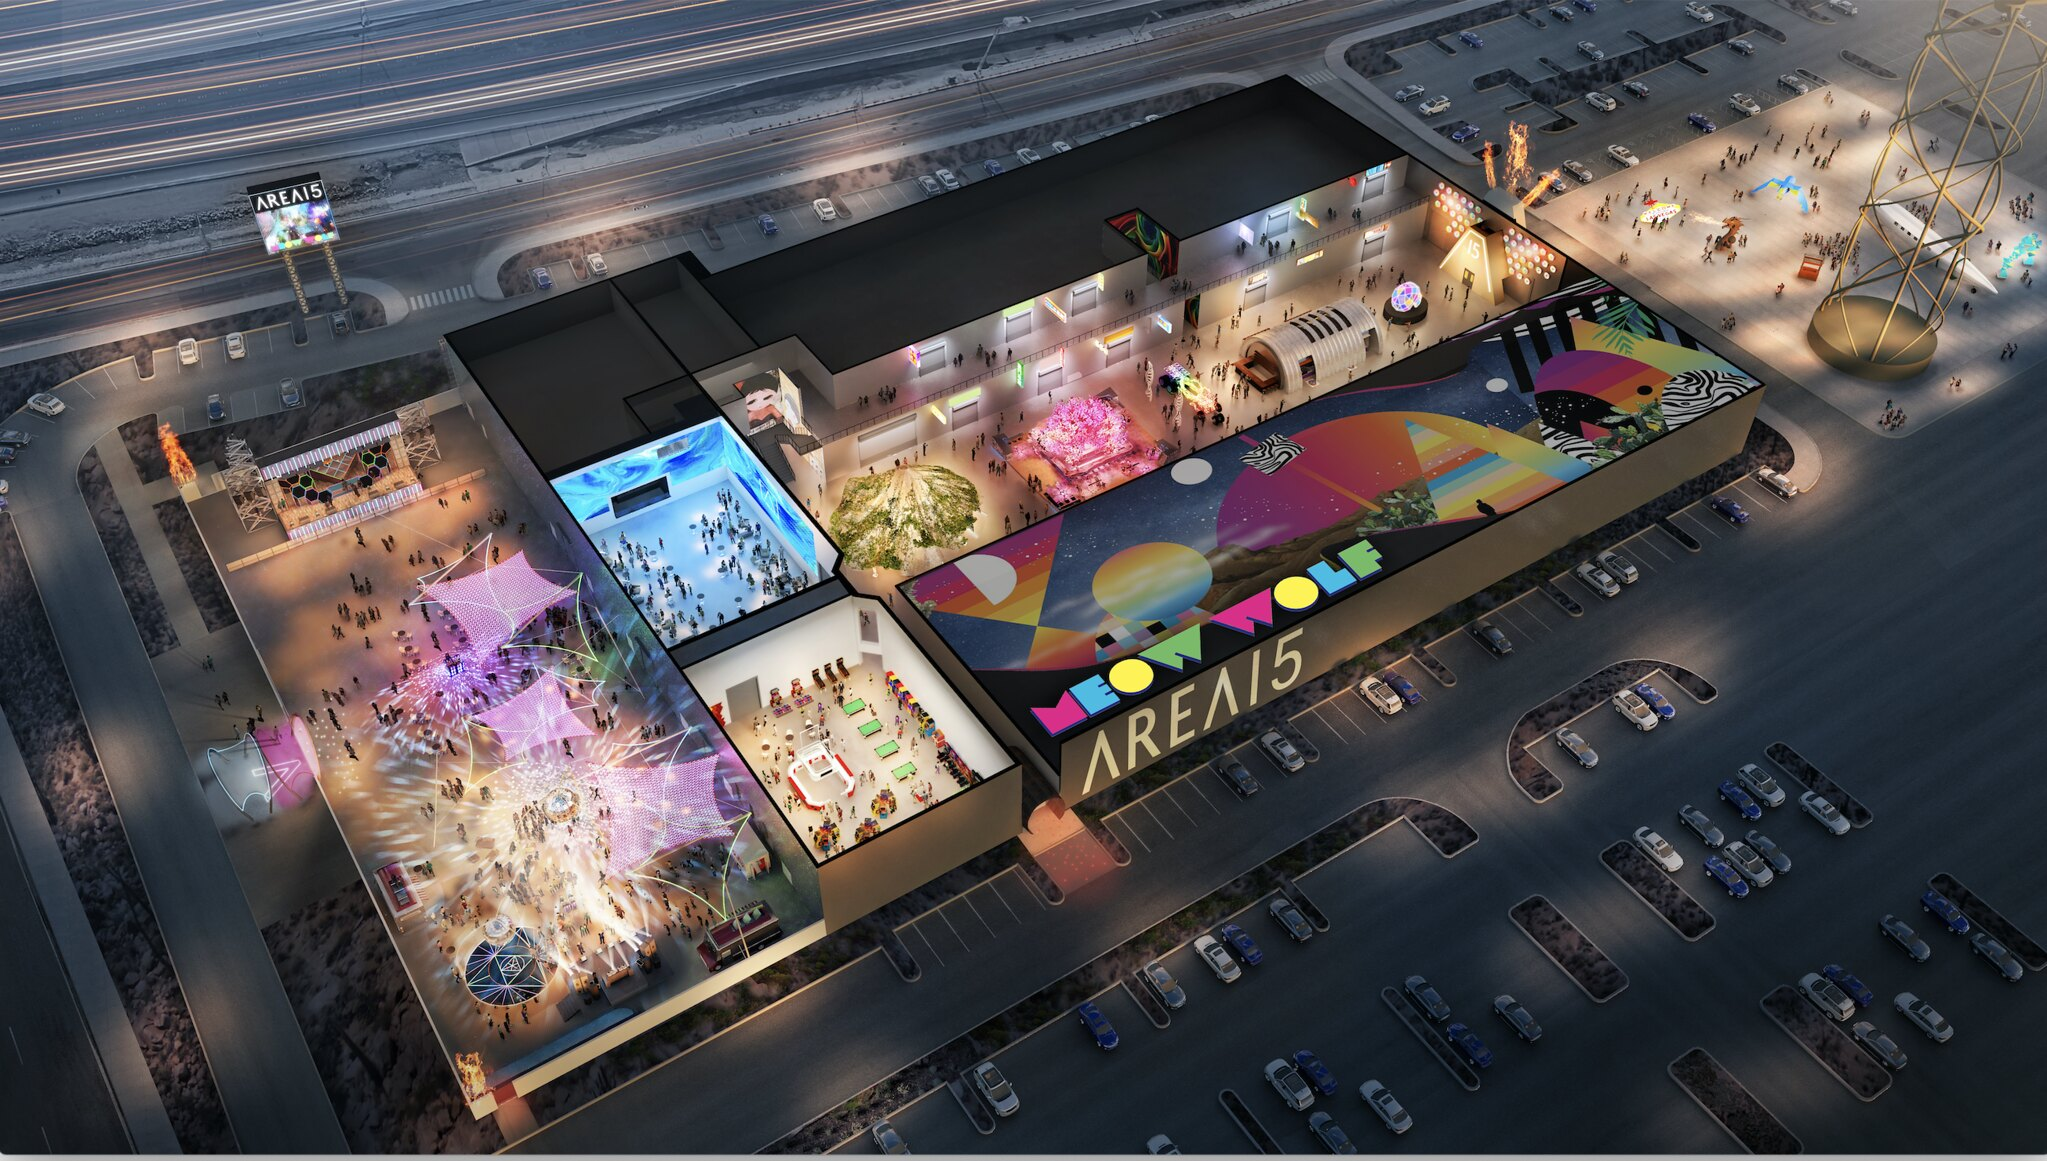 The Most Anticipated Las Vegas Restaurant Openings in 2020